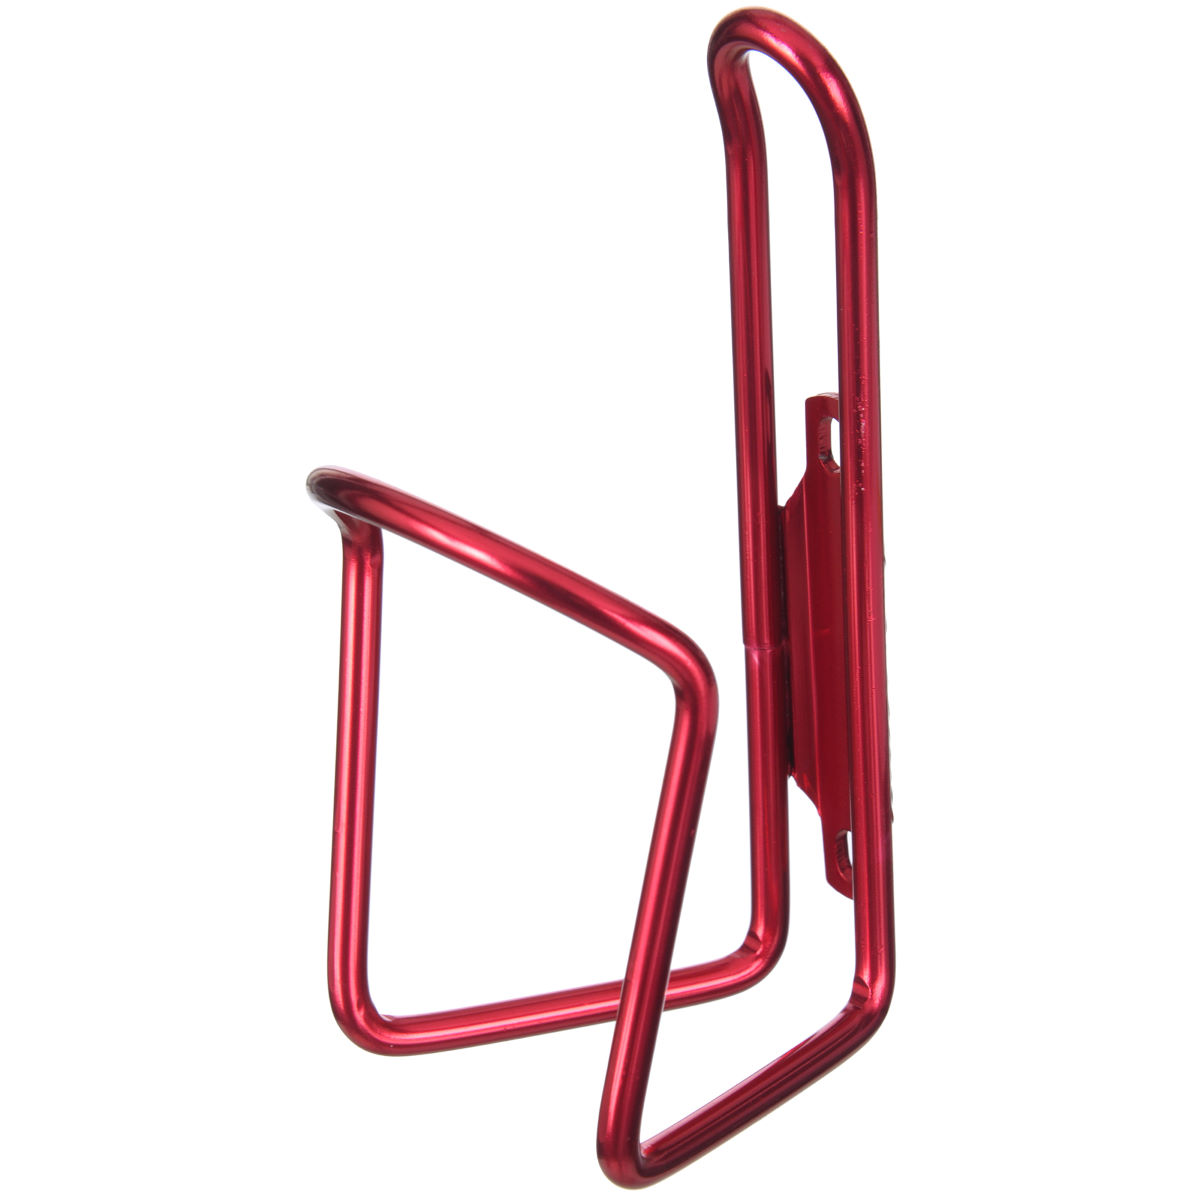 Porte-bidon LifeLine (alliage) - One Size Metallic Red Porte-bidons